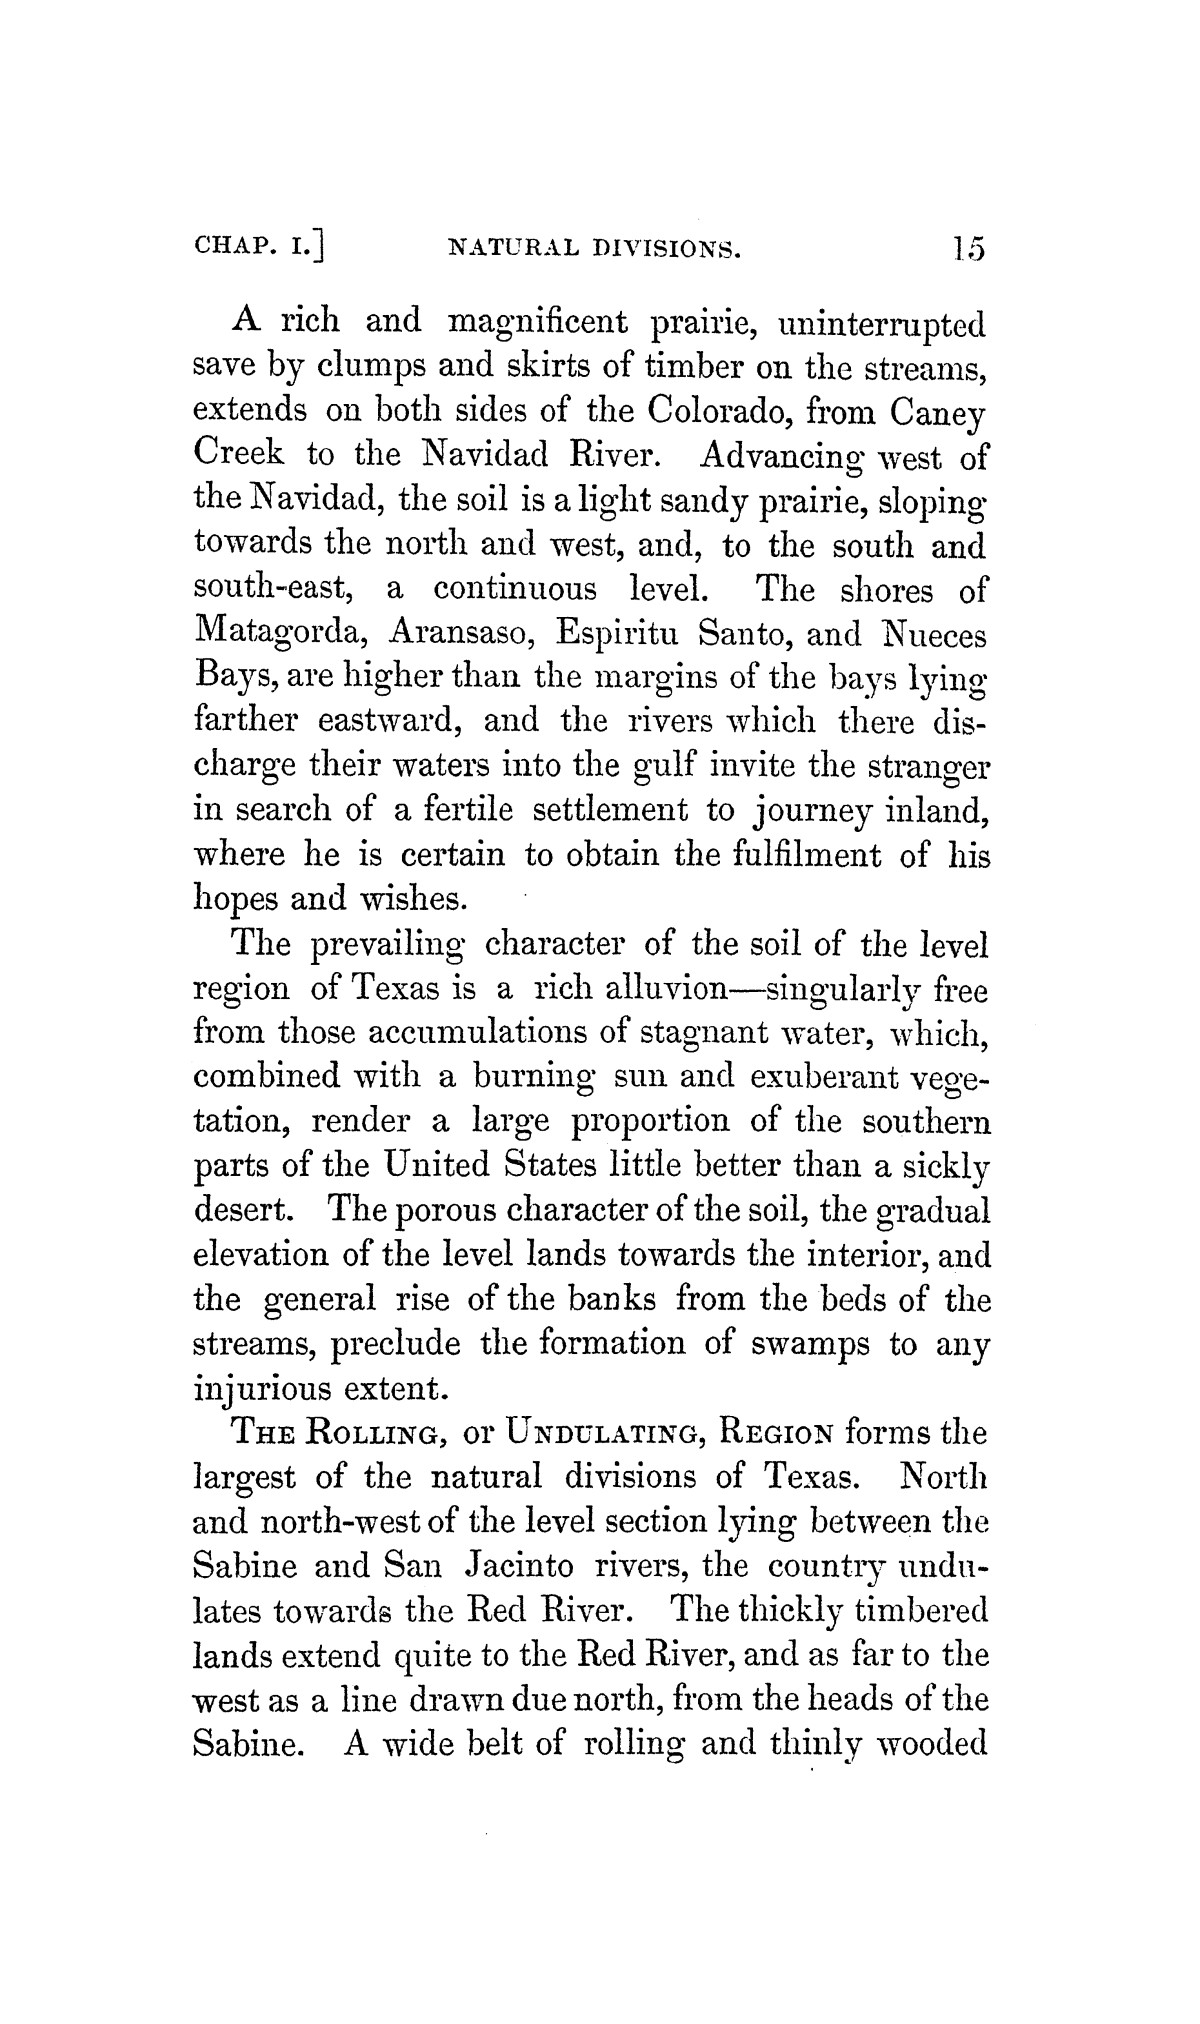 Texas: the rise, progress, and prospects of the Republic of Texas, Vol.1                                                                                                      [Sequence #]: 67 of 432